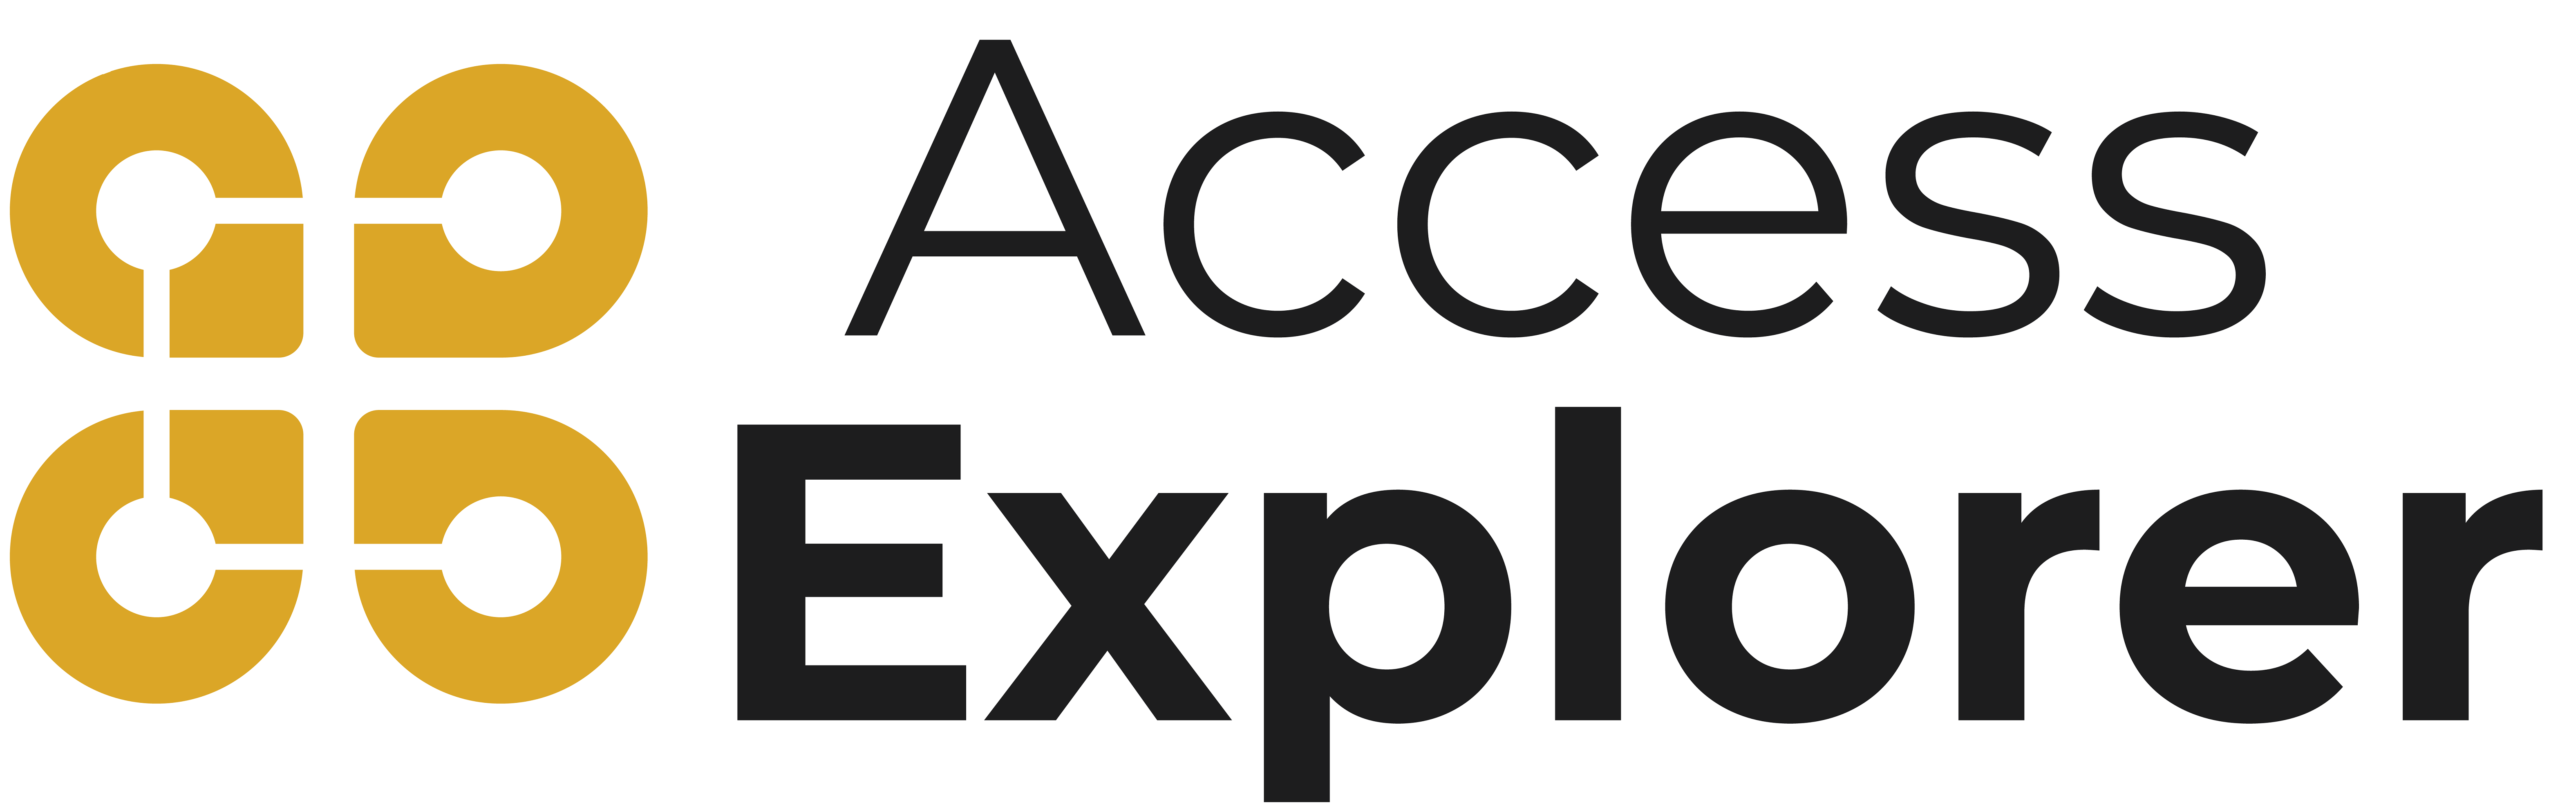 Access Explorer Logo